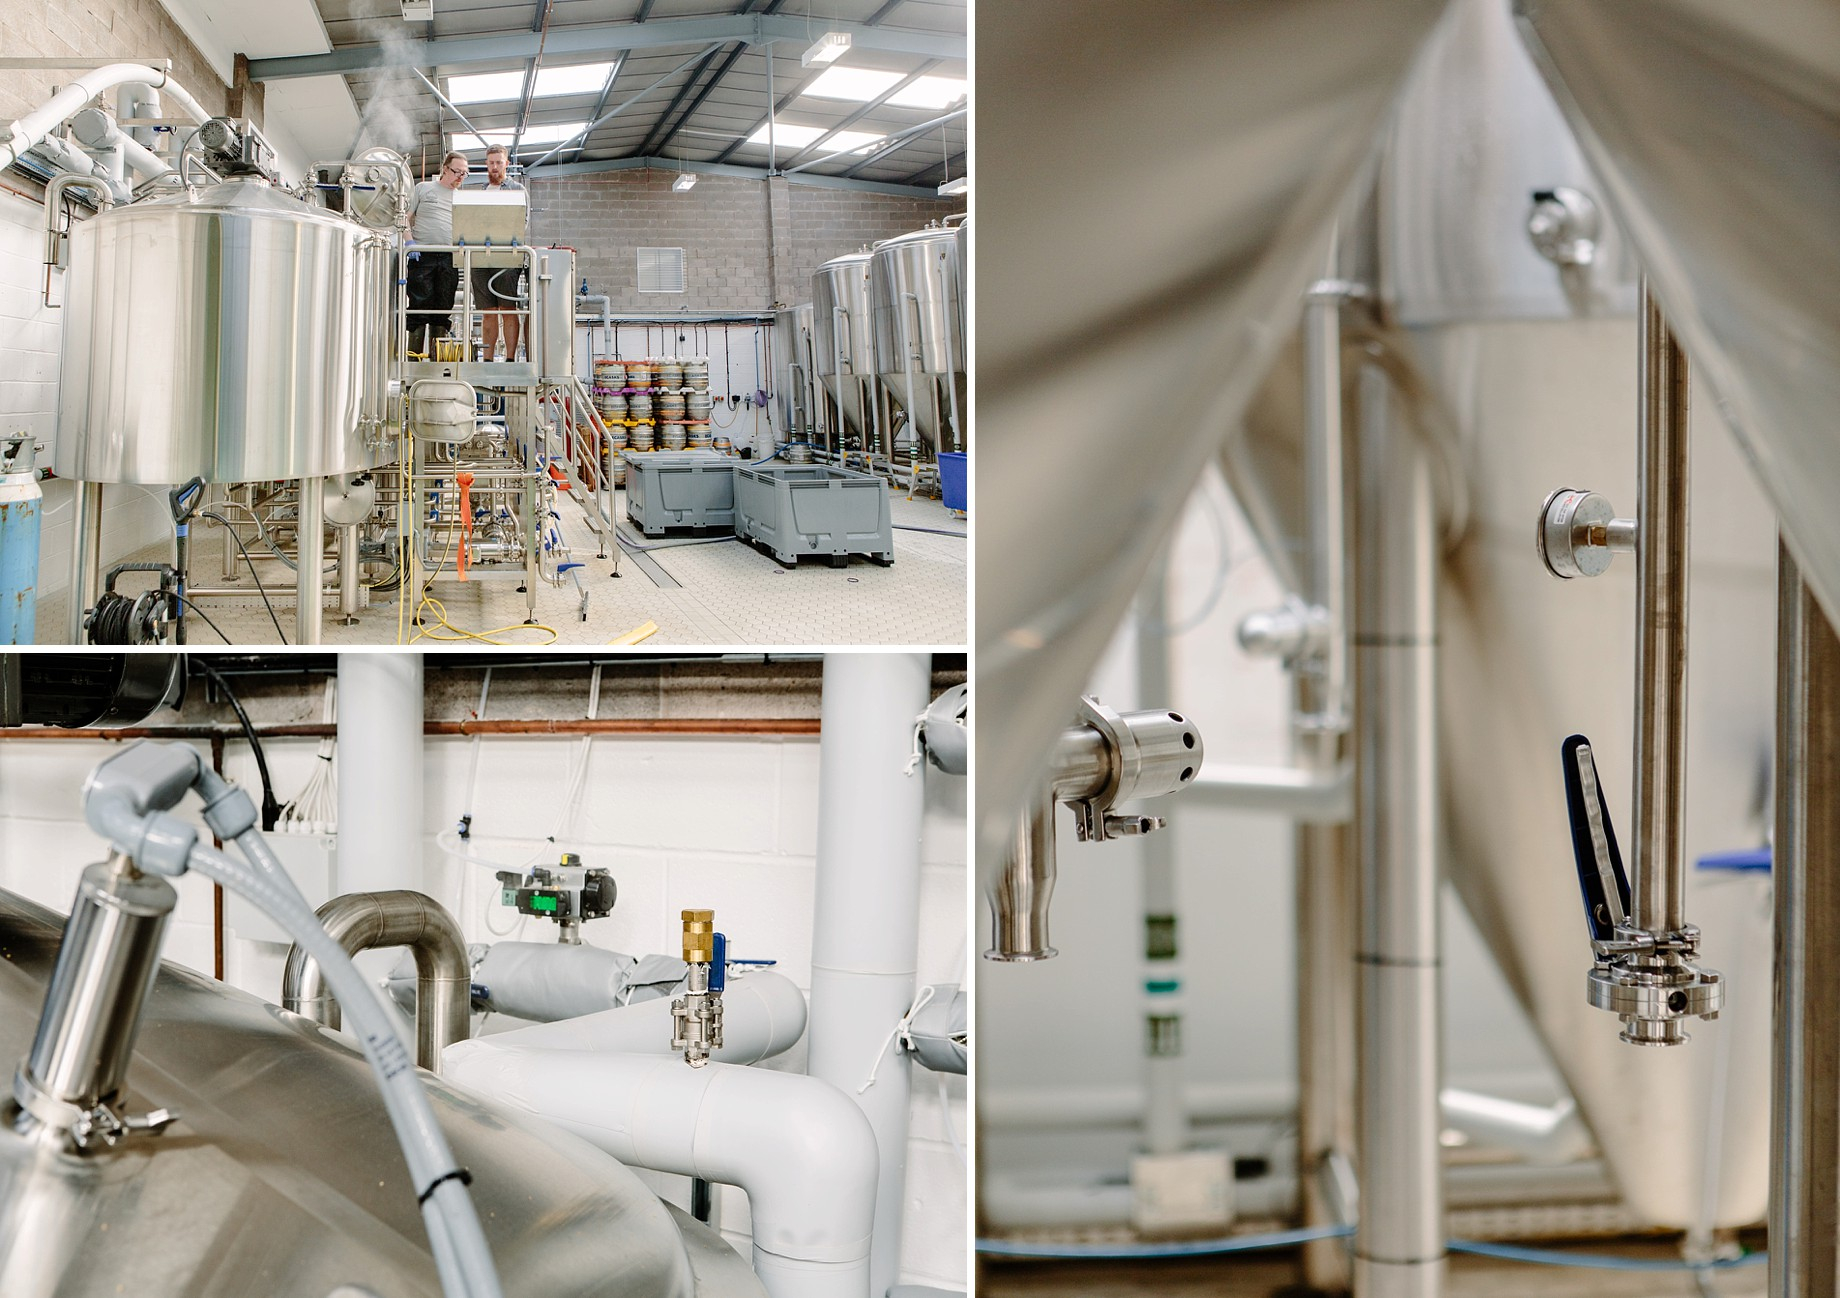 Cloudwater_brew_Co_005_brewery_details_craft_beer.JPG